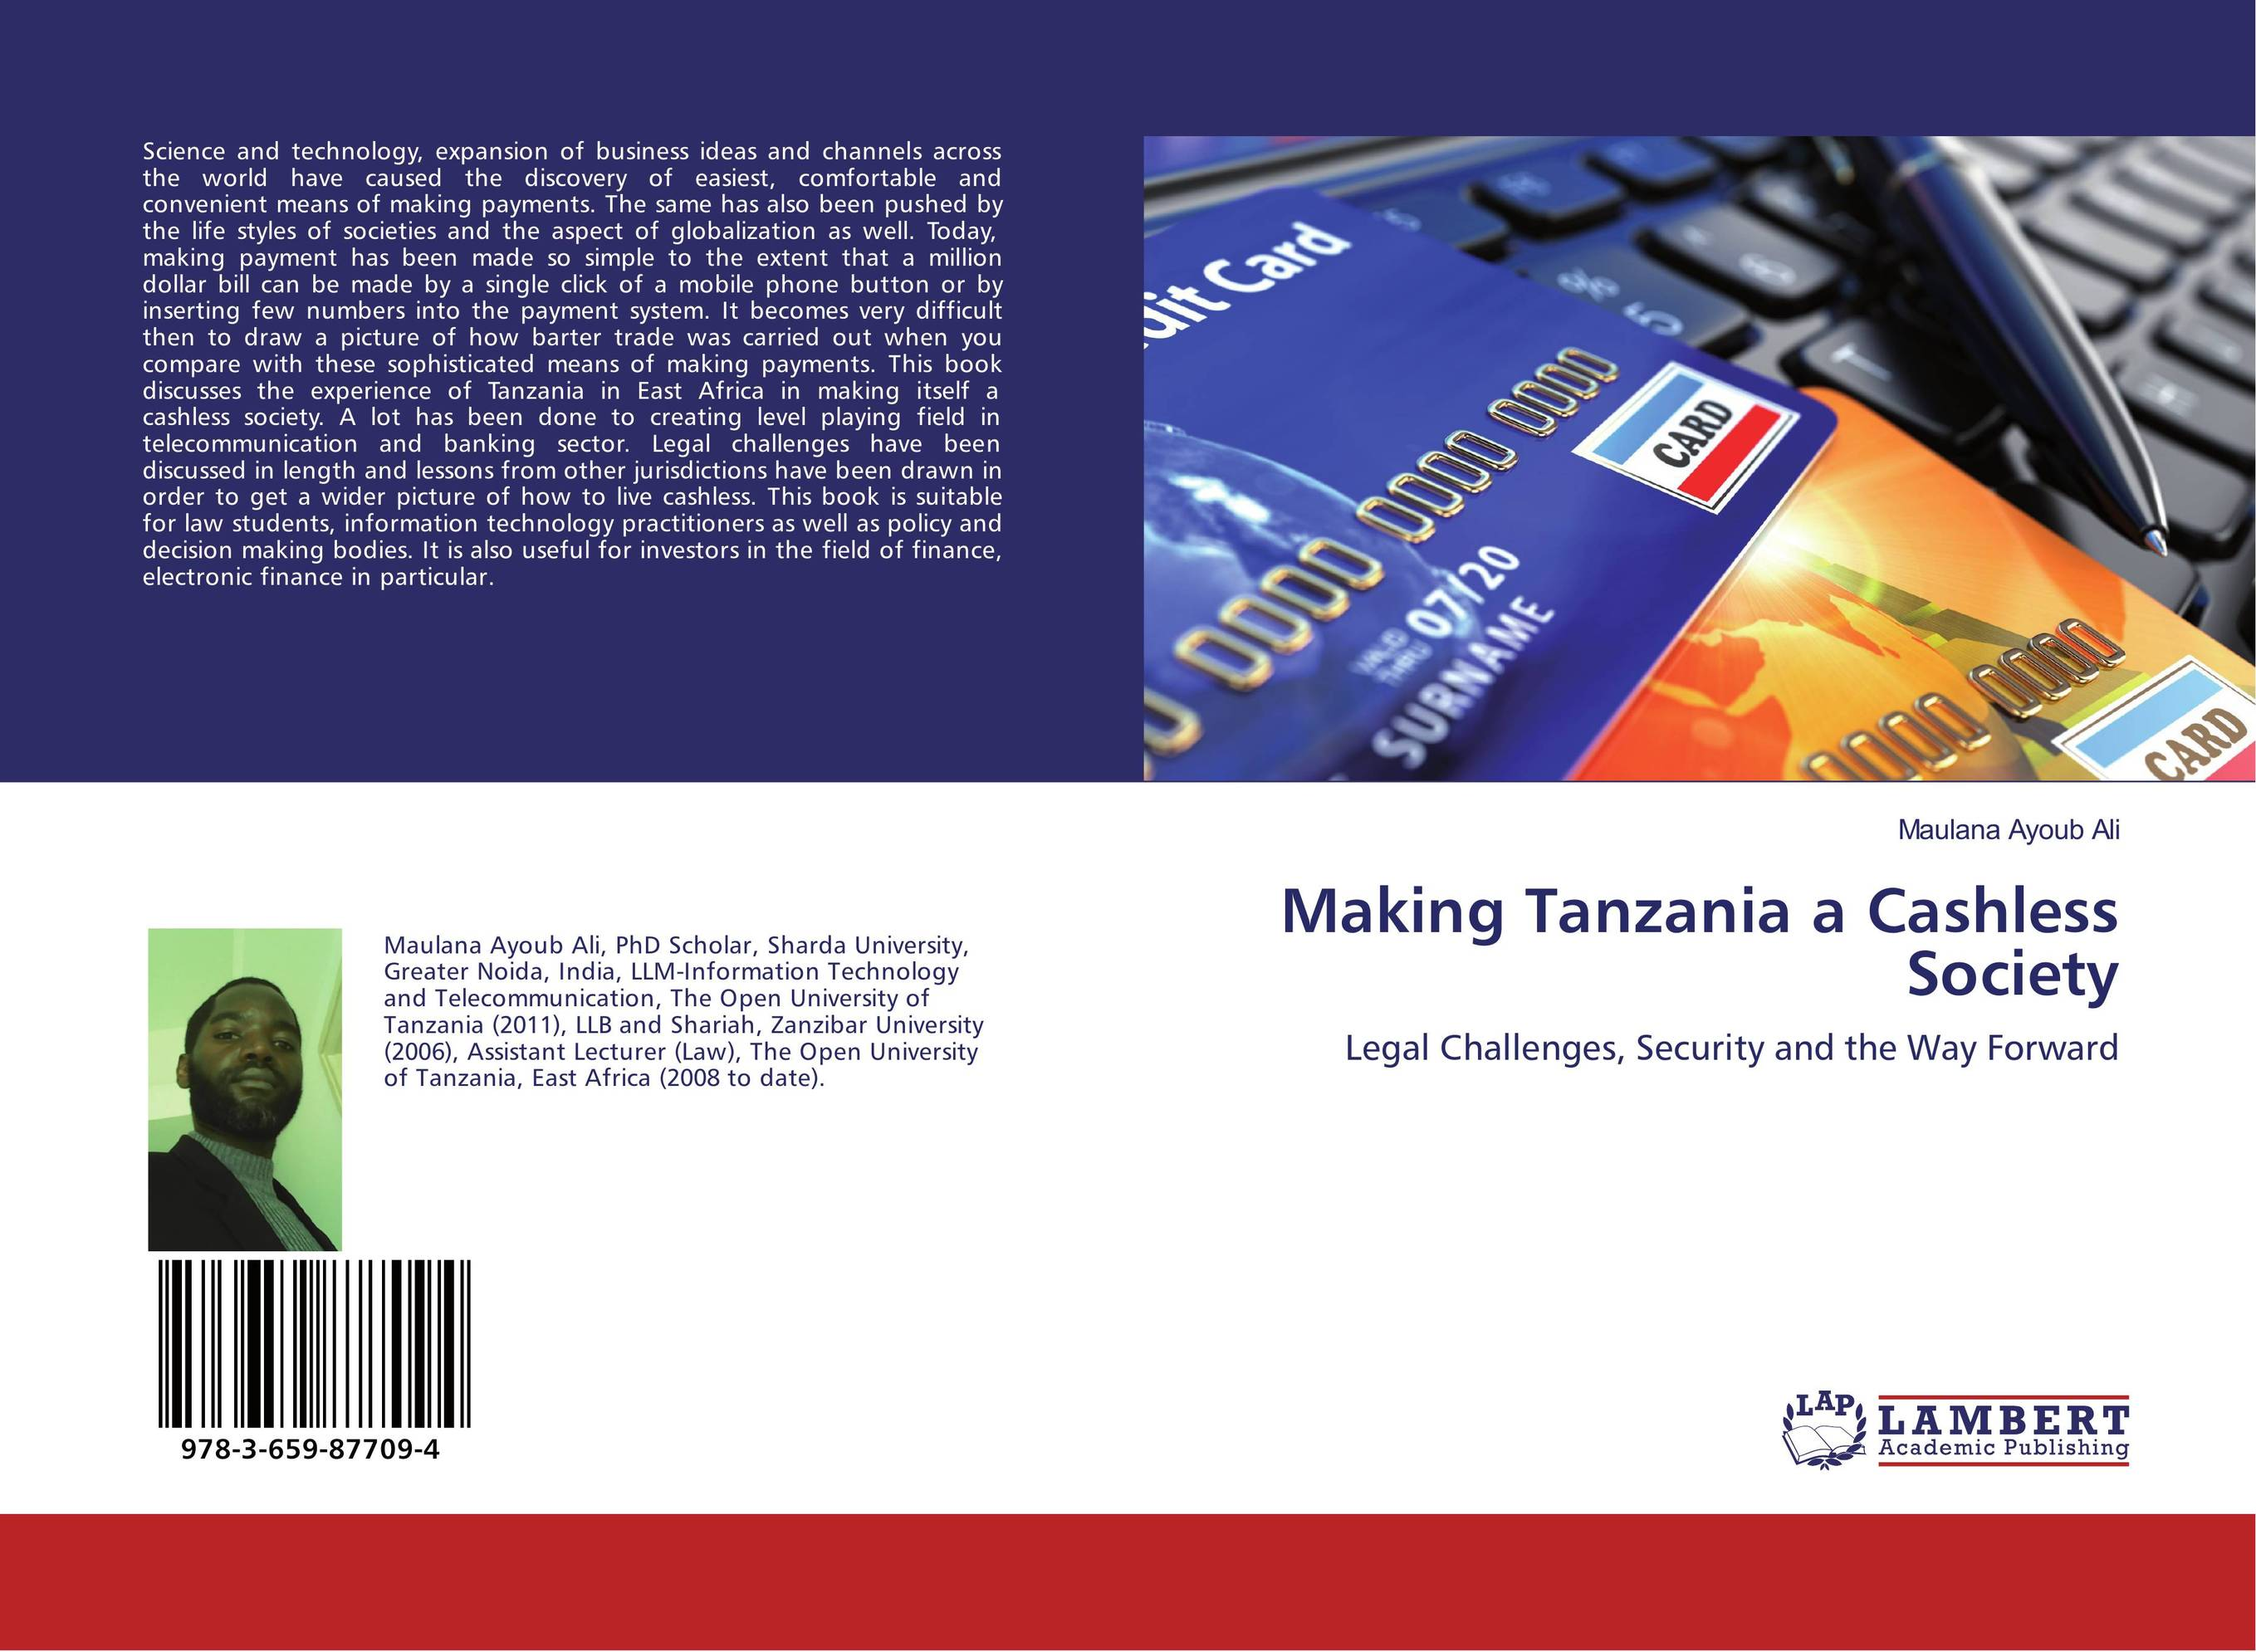 Making Tanzania a Cashless Society voluntary associations in tsarist russia – science patriotism and civil society